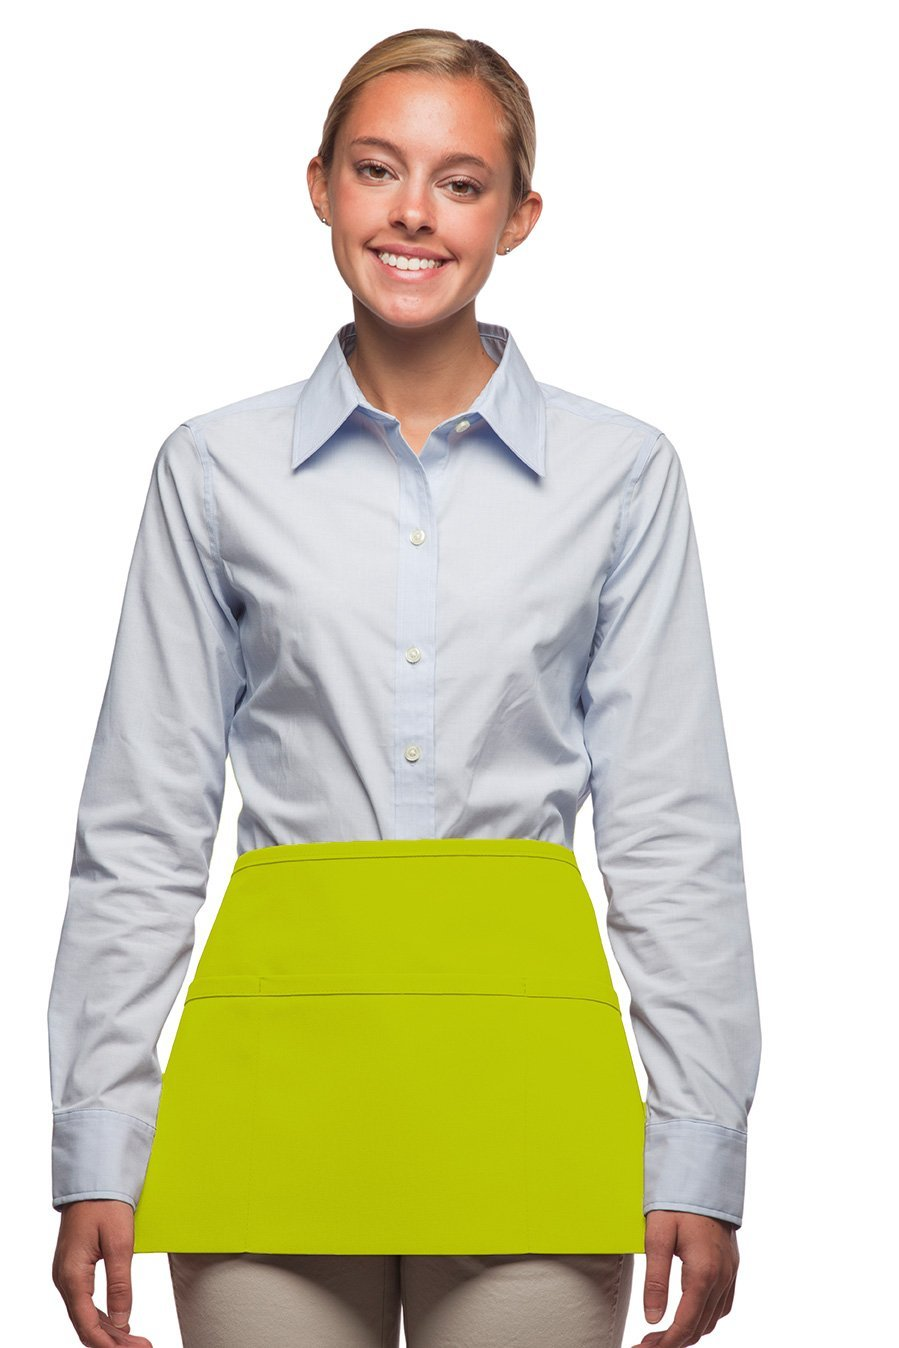 Lime Deluxe XL Waist Apron (3 Pockets)